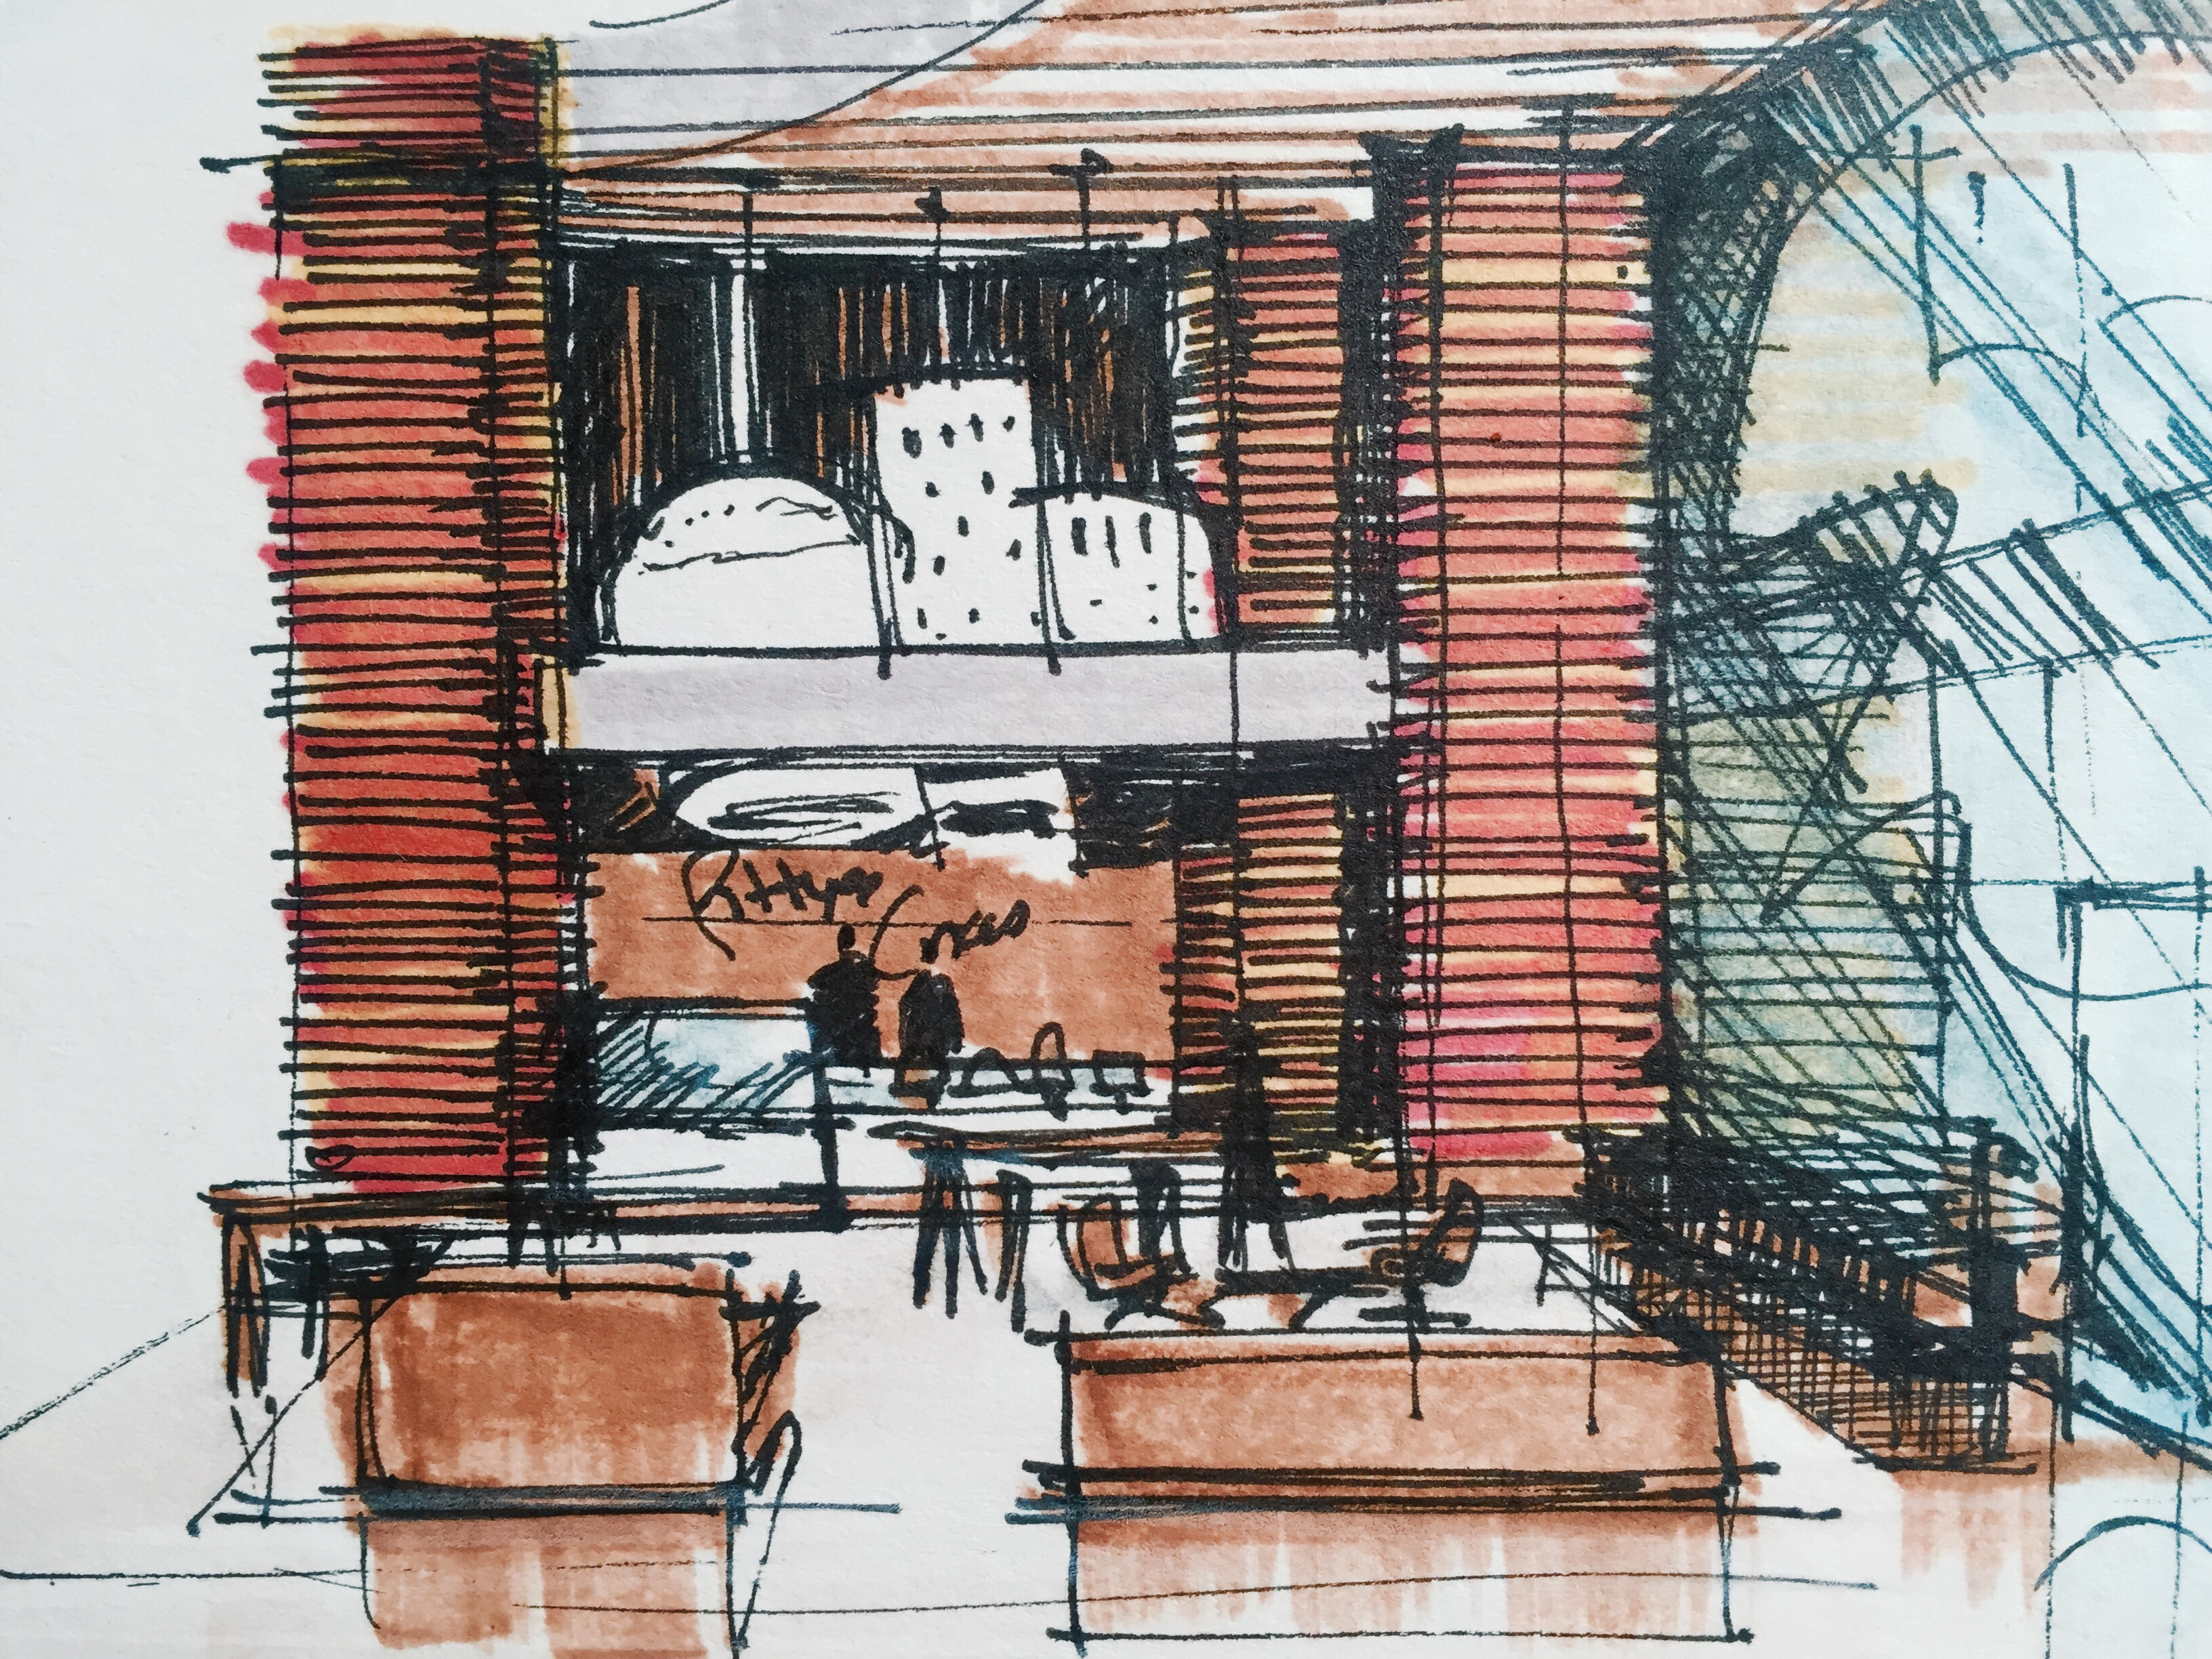 Bakery Shop Design Sketches